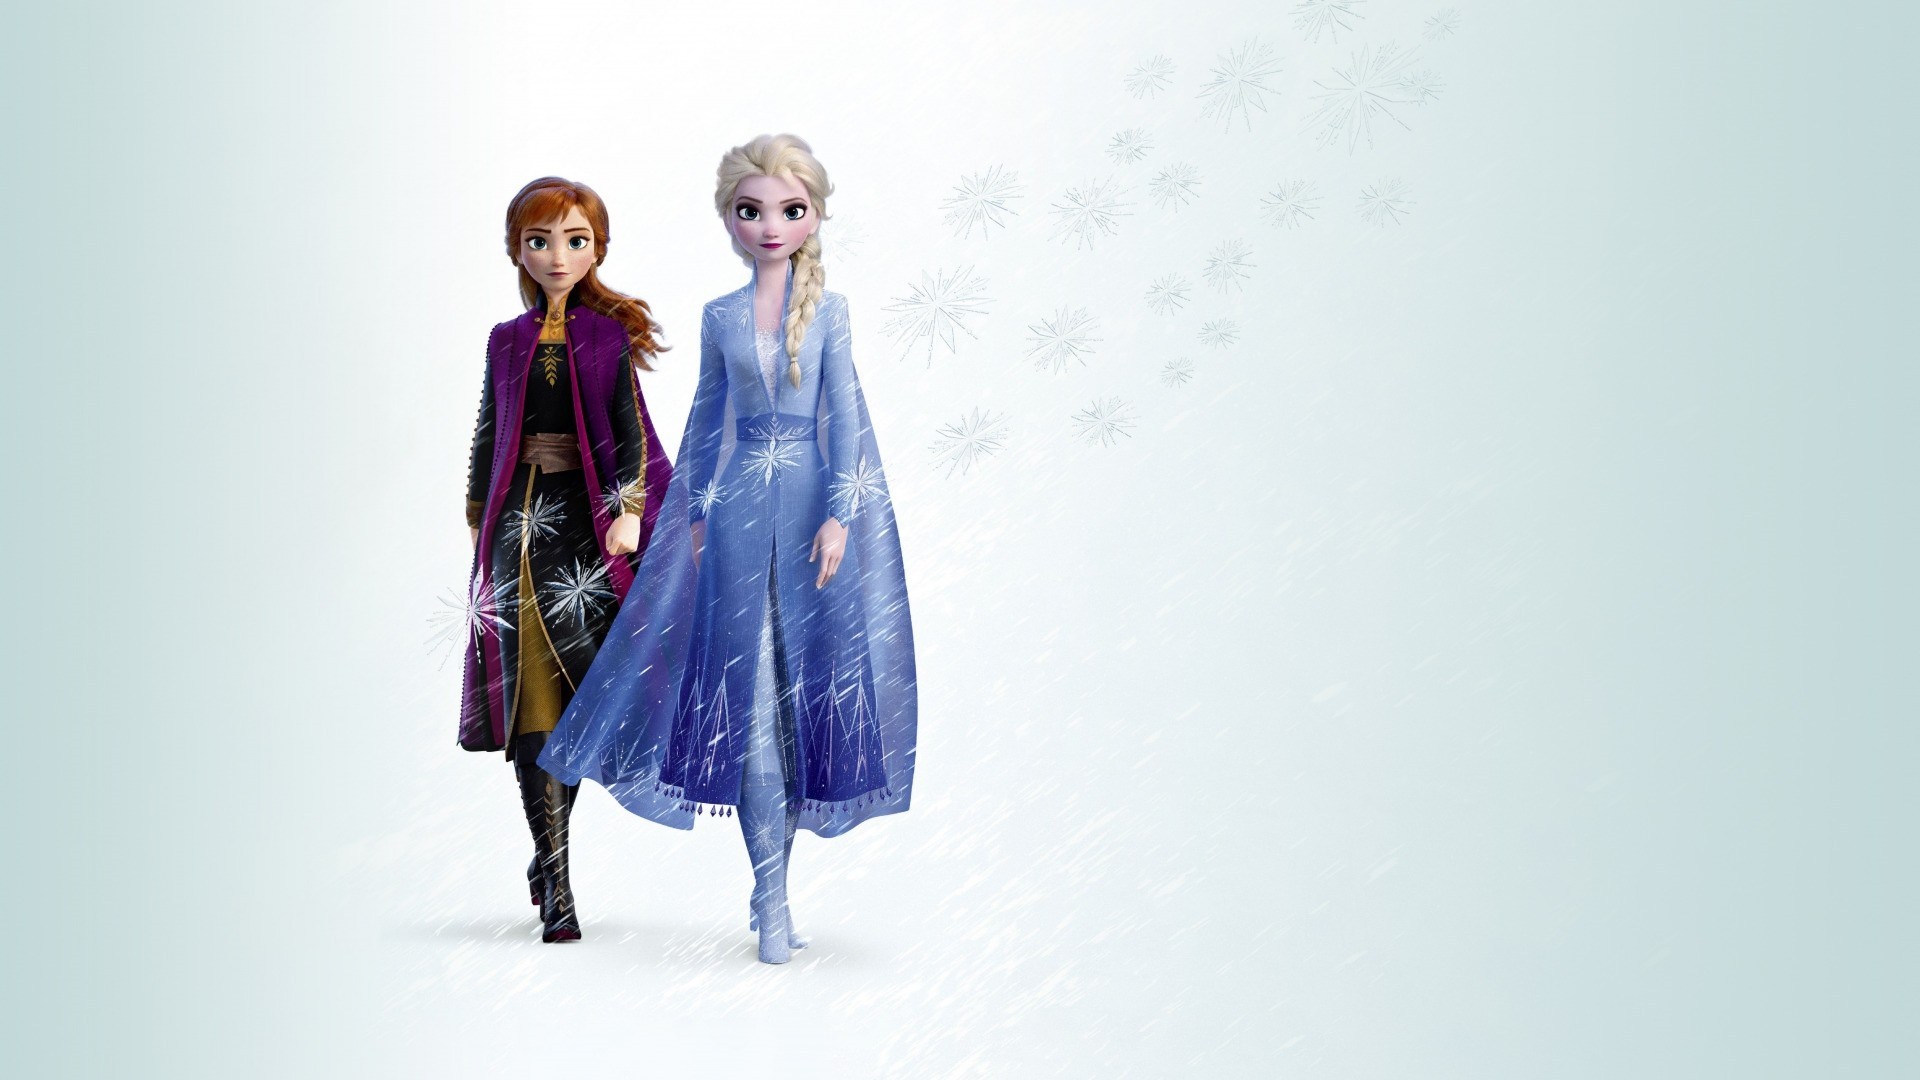 Frozen 2 High Quality